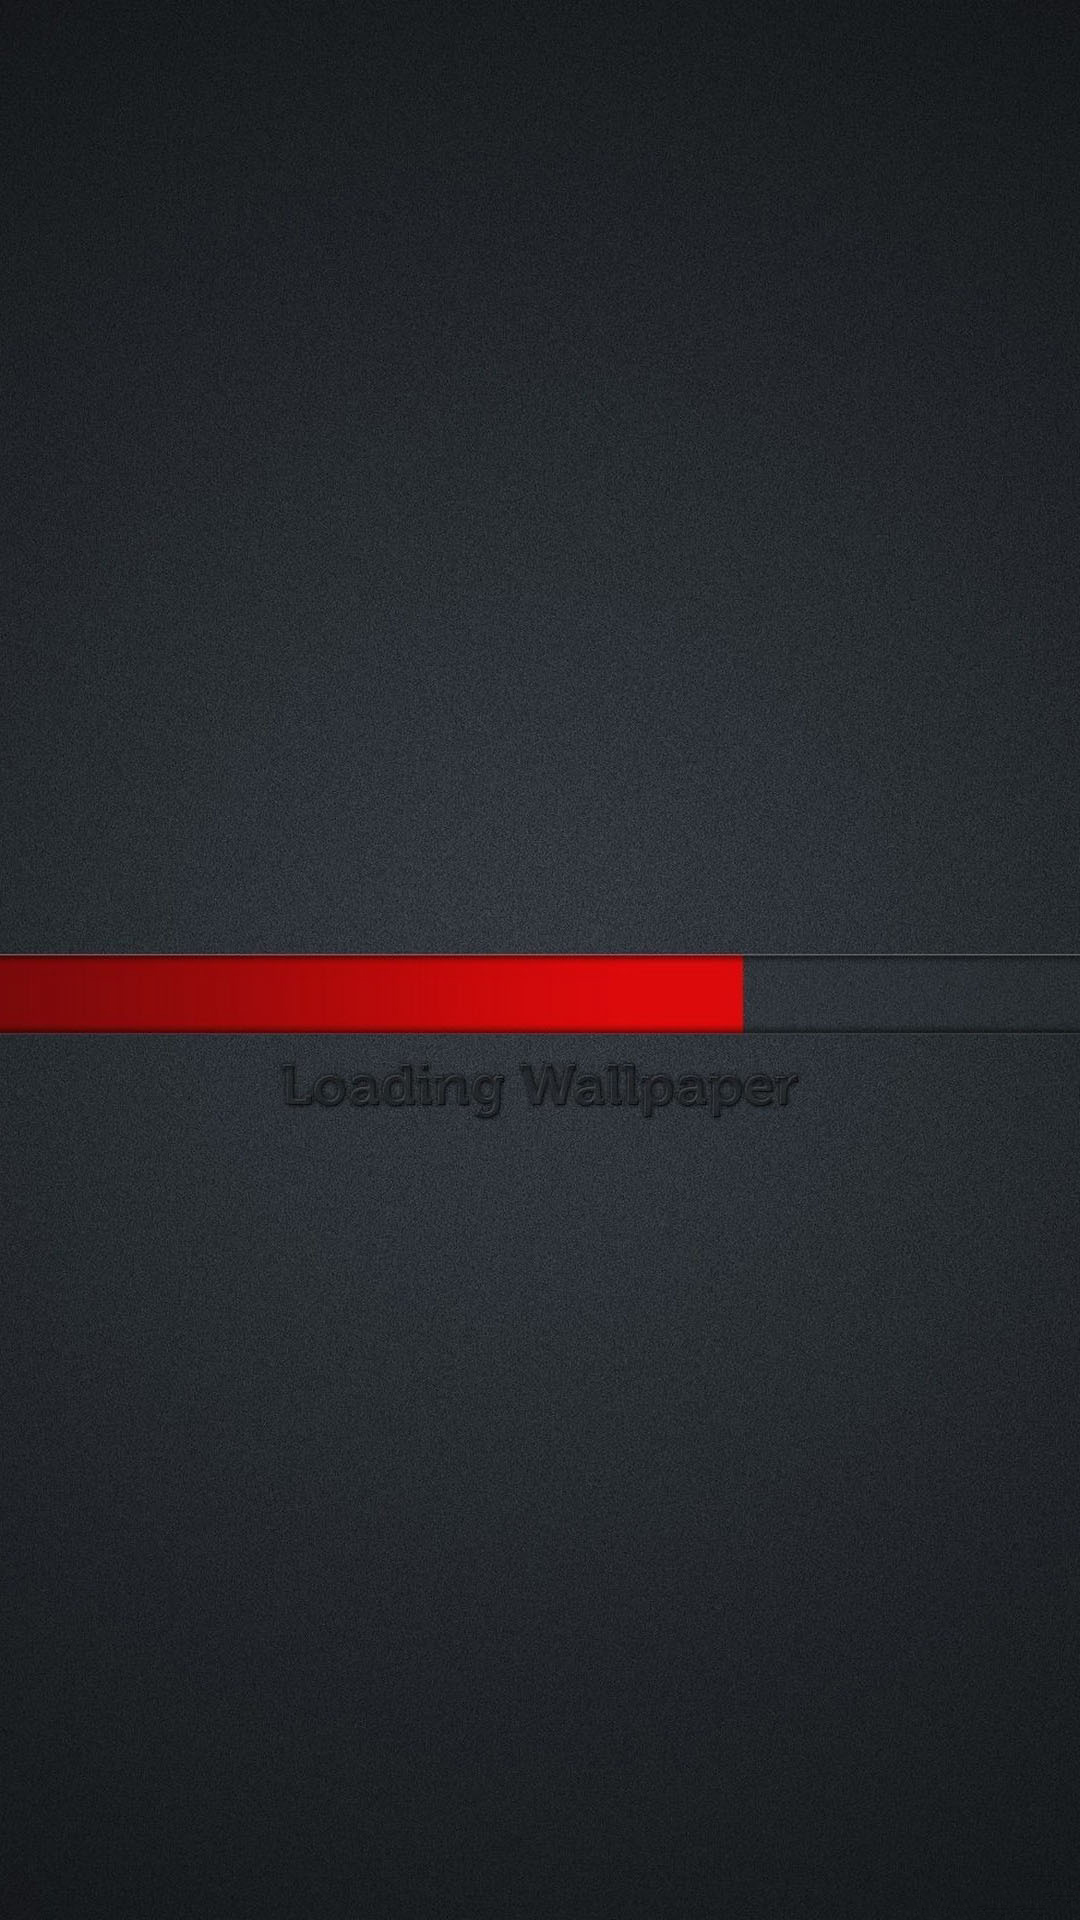 1080x1920 Loading Wallpaper Red Line Grey Background Android Wallpaper ...